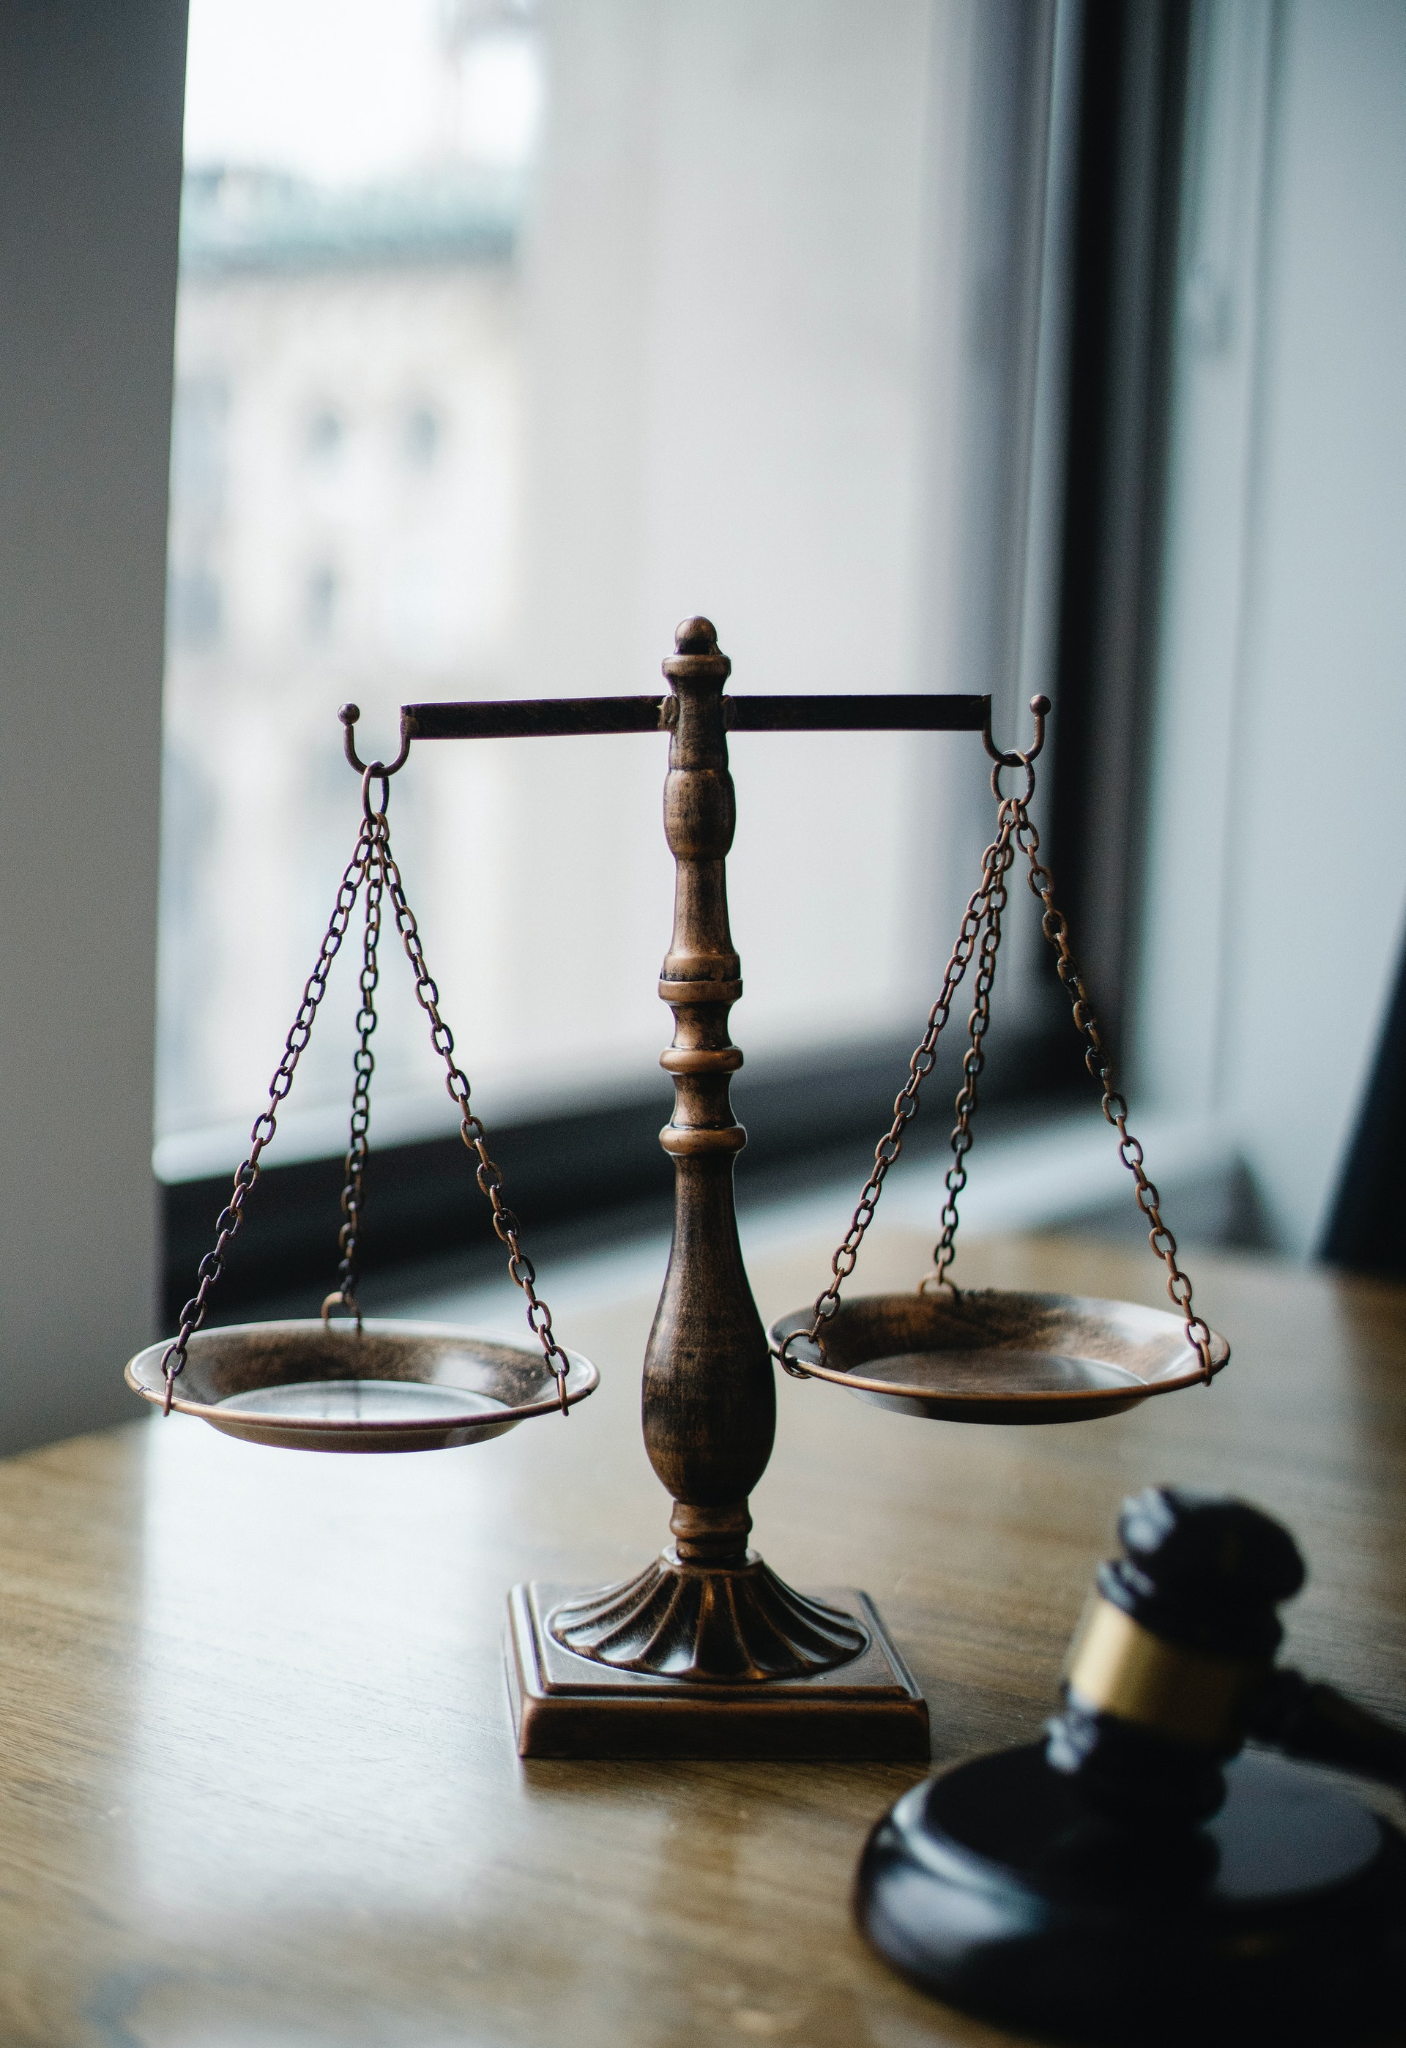 A scale and gavel representing the law.